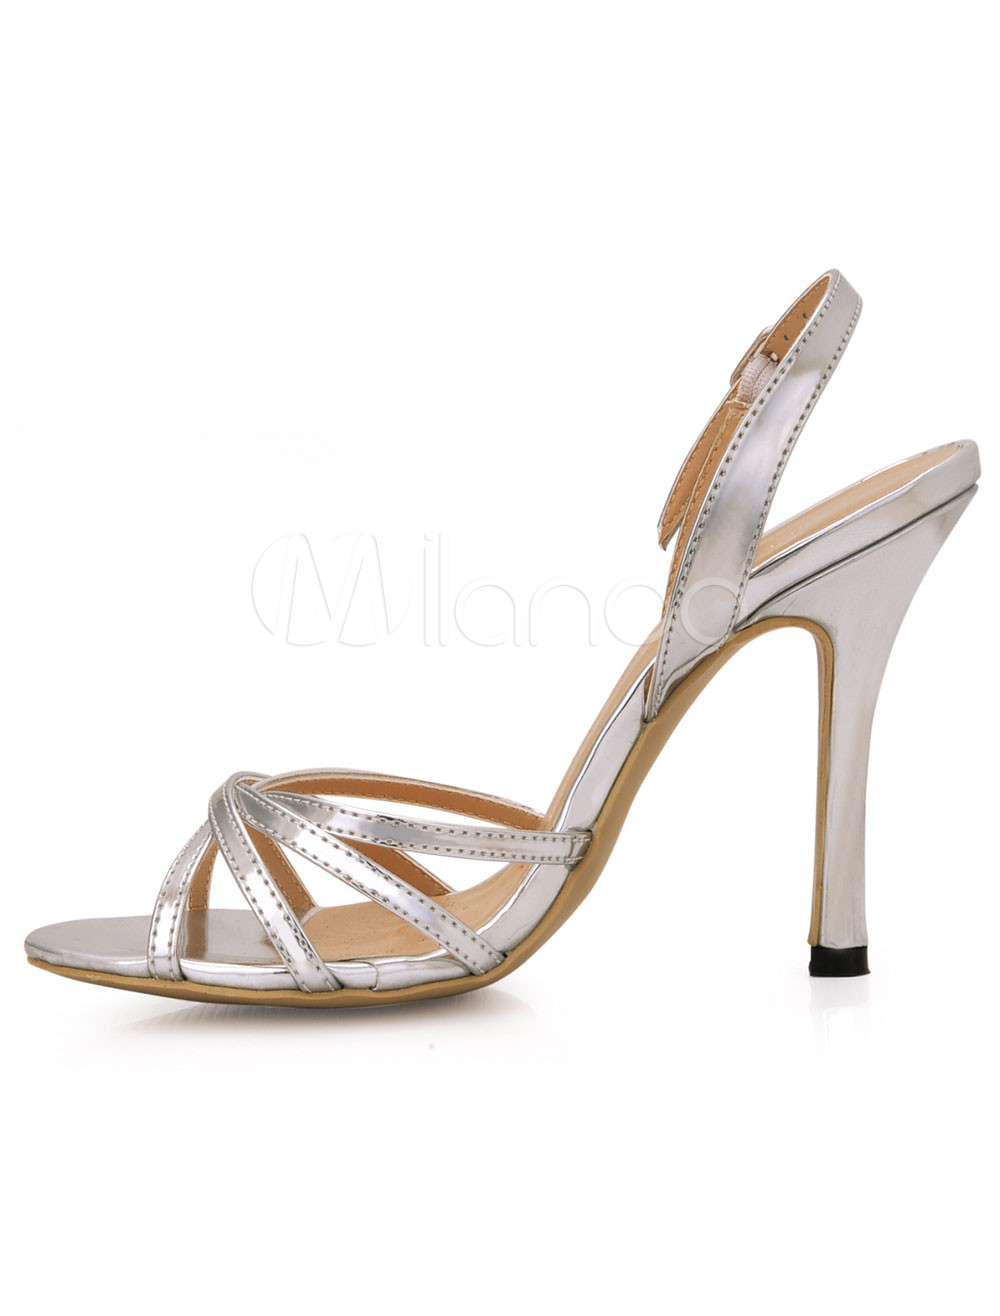 Silver PU Leather Slingback High Heel Sandals